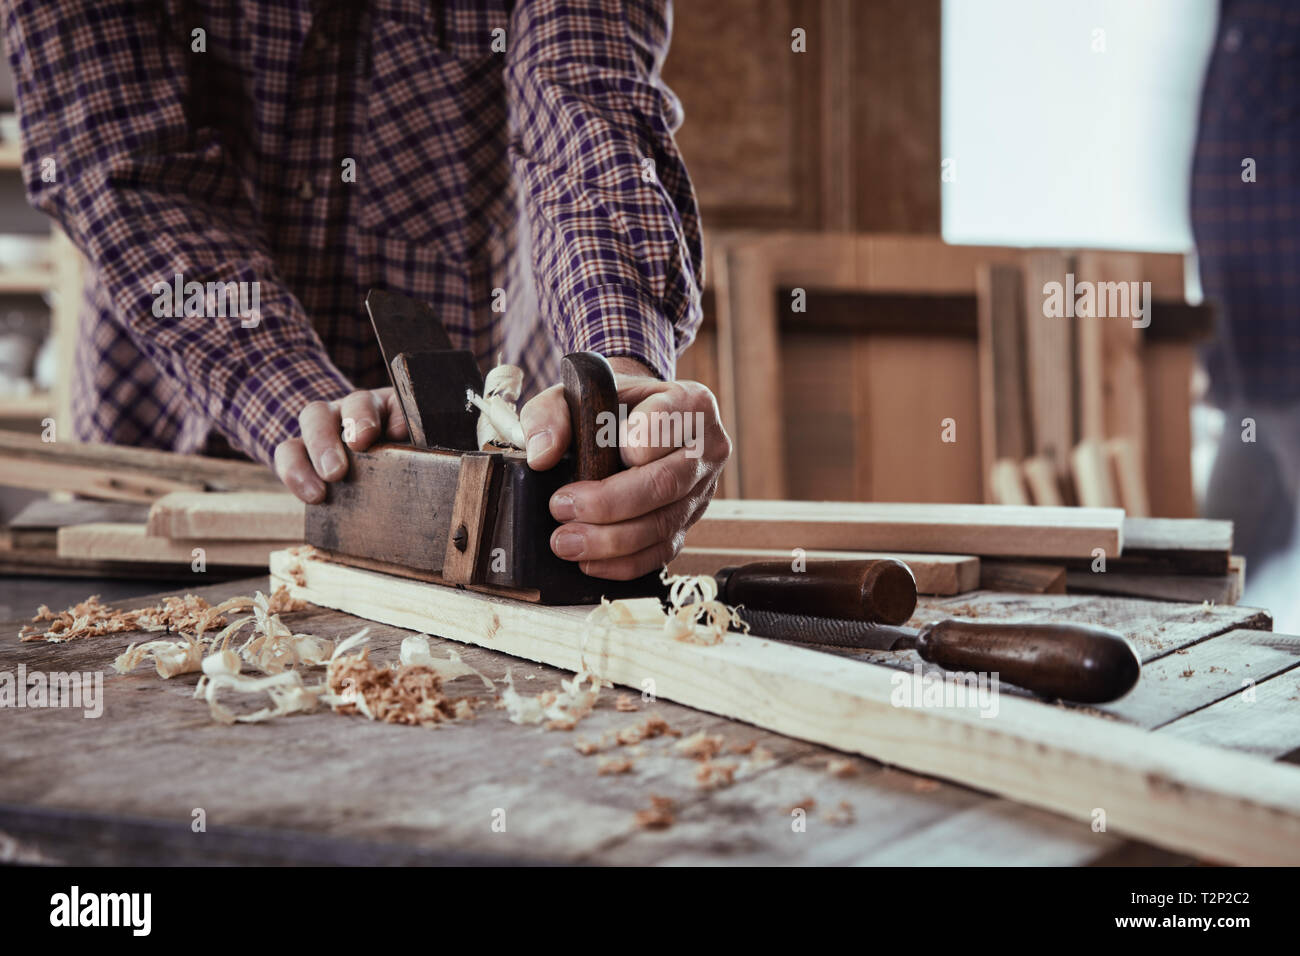 Carpenter or woodworker using an old wooden plane to smooth the surface of planks of fresh lumber in a woodworking workshop - Stock Image